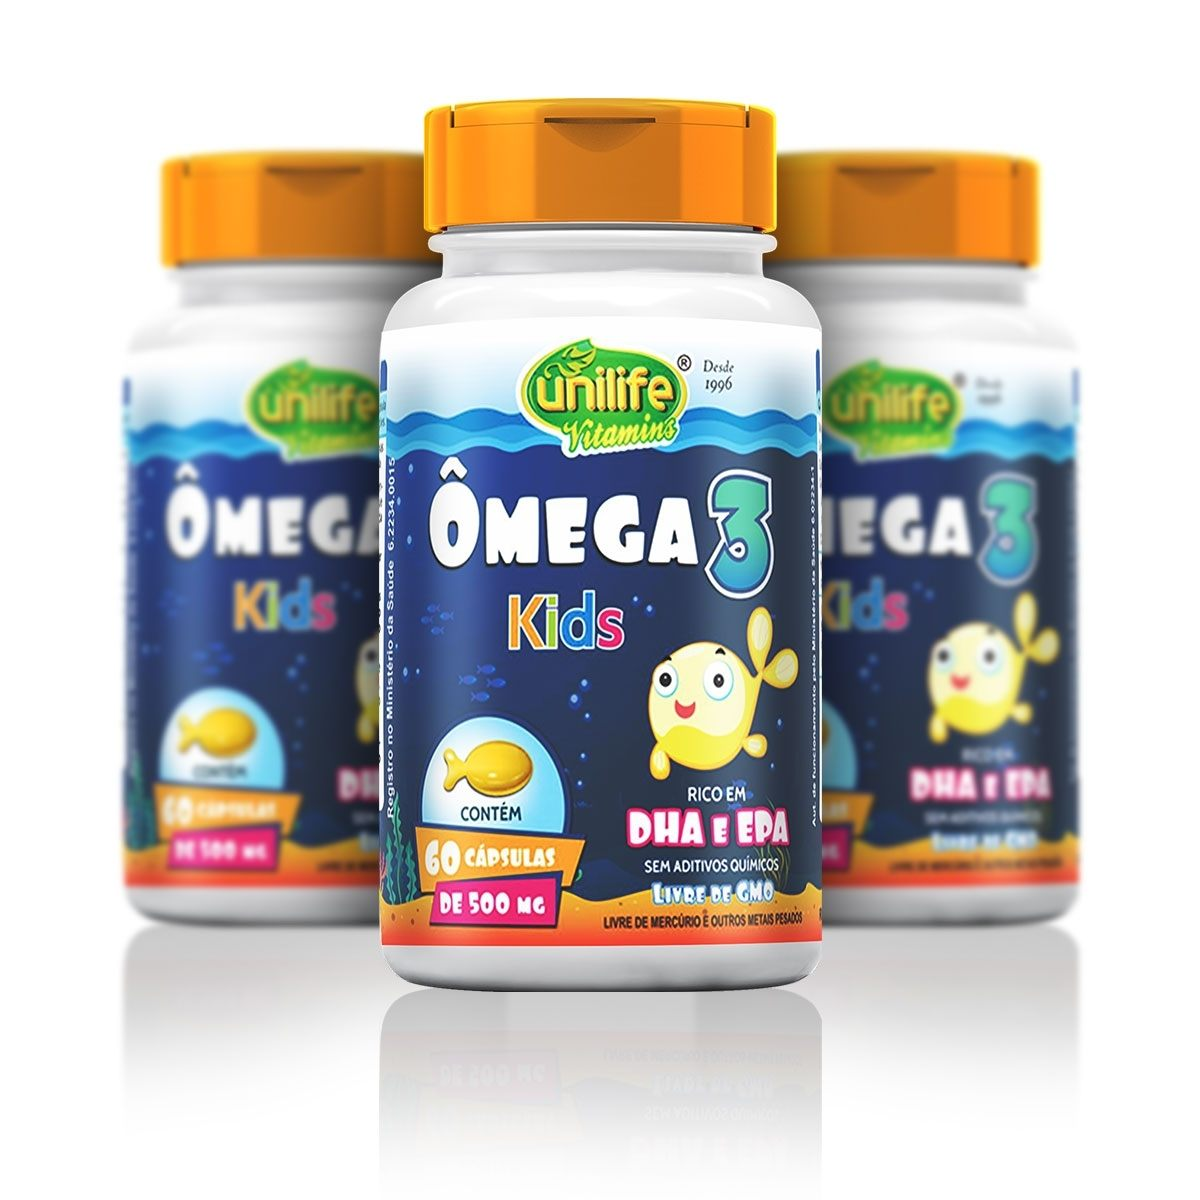 Kit 3 Unidades de Ômega Kids 500mg 60Caps cada Unilife